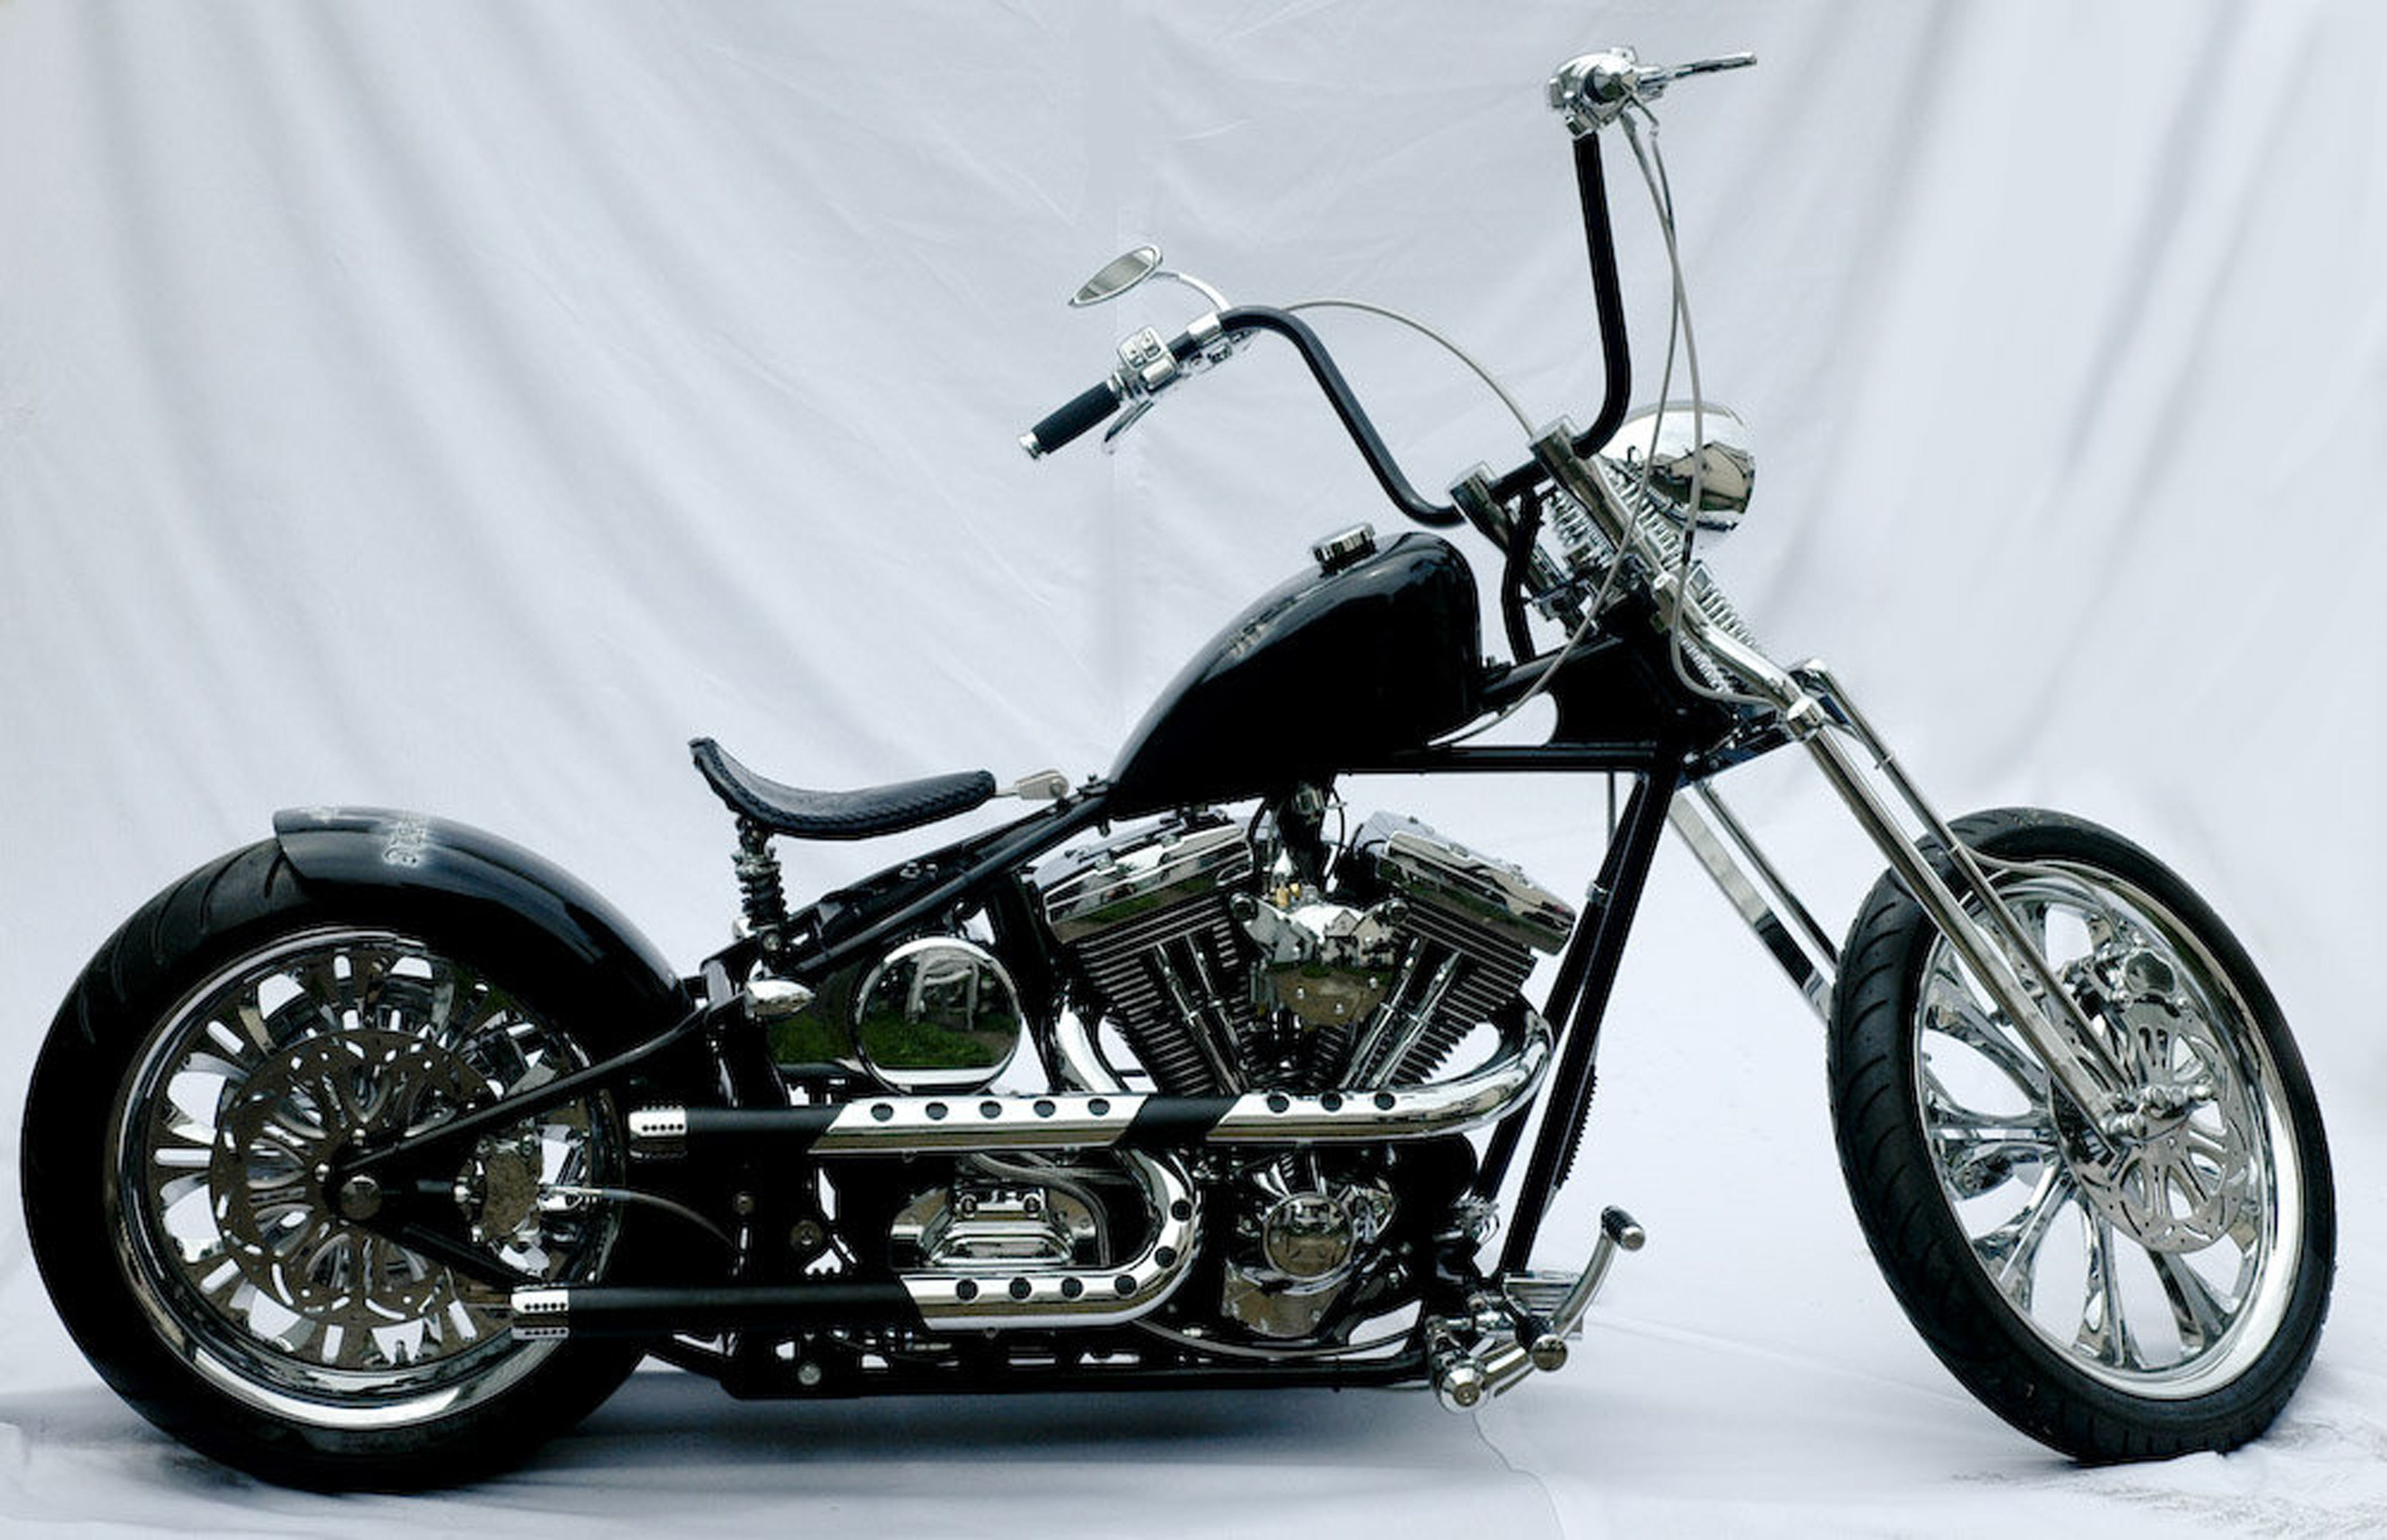 harley davidson choppers kustom bikes chopper harley. Black Bedroom Furniture Sets. Home Design Ideas